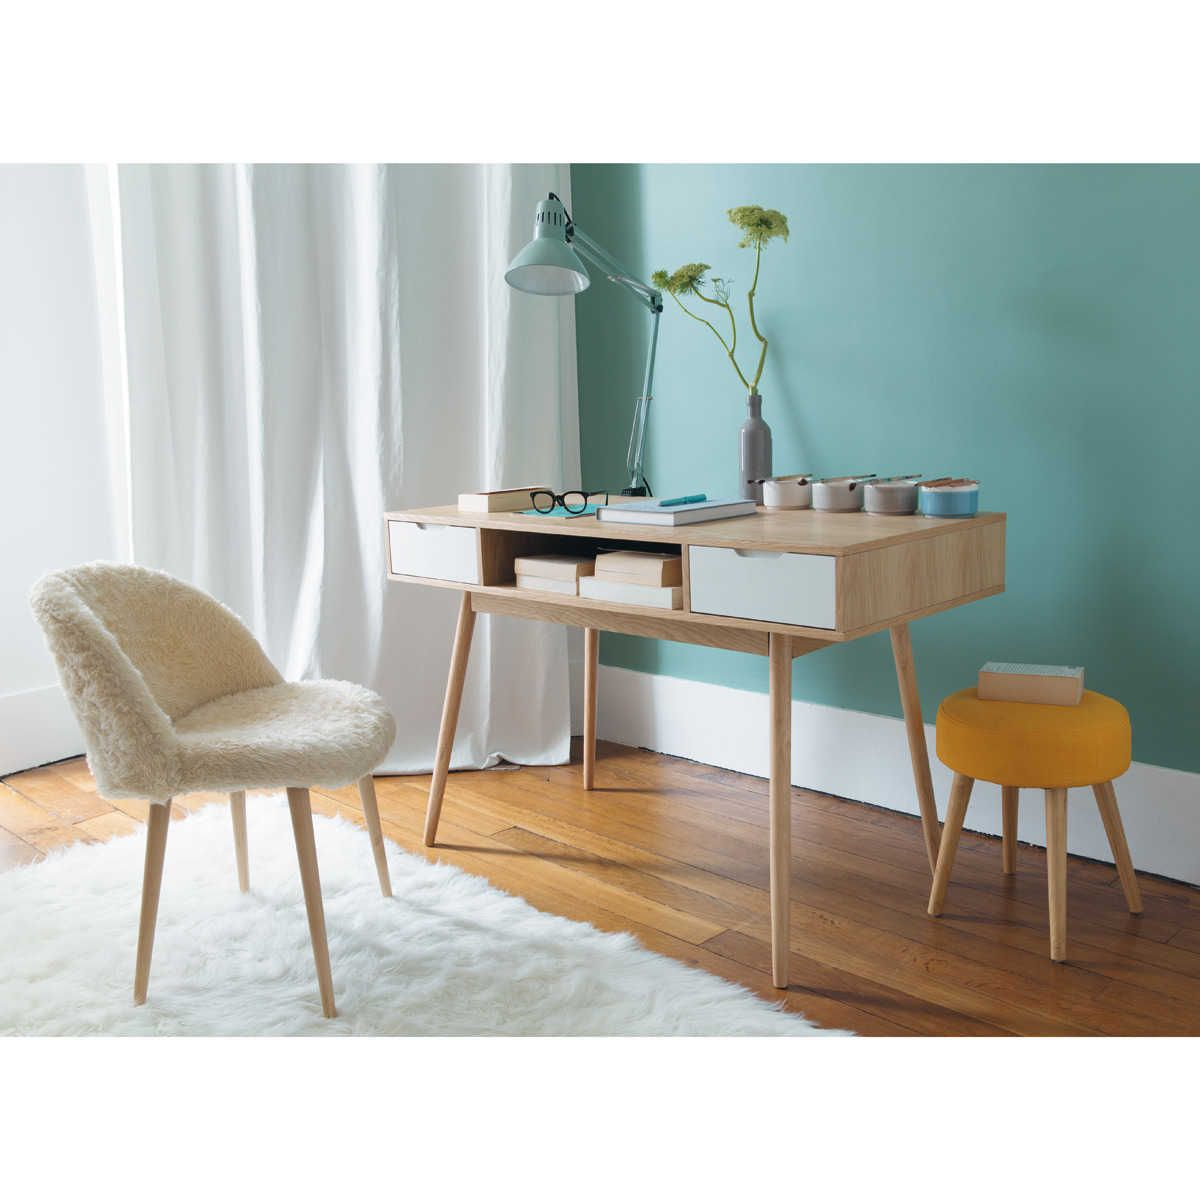 bureau vintage en bois l 120 cm fjord maisons du monde. Black Bedroom Furniture Sets. Home Design Ideas